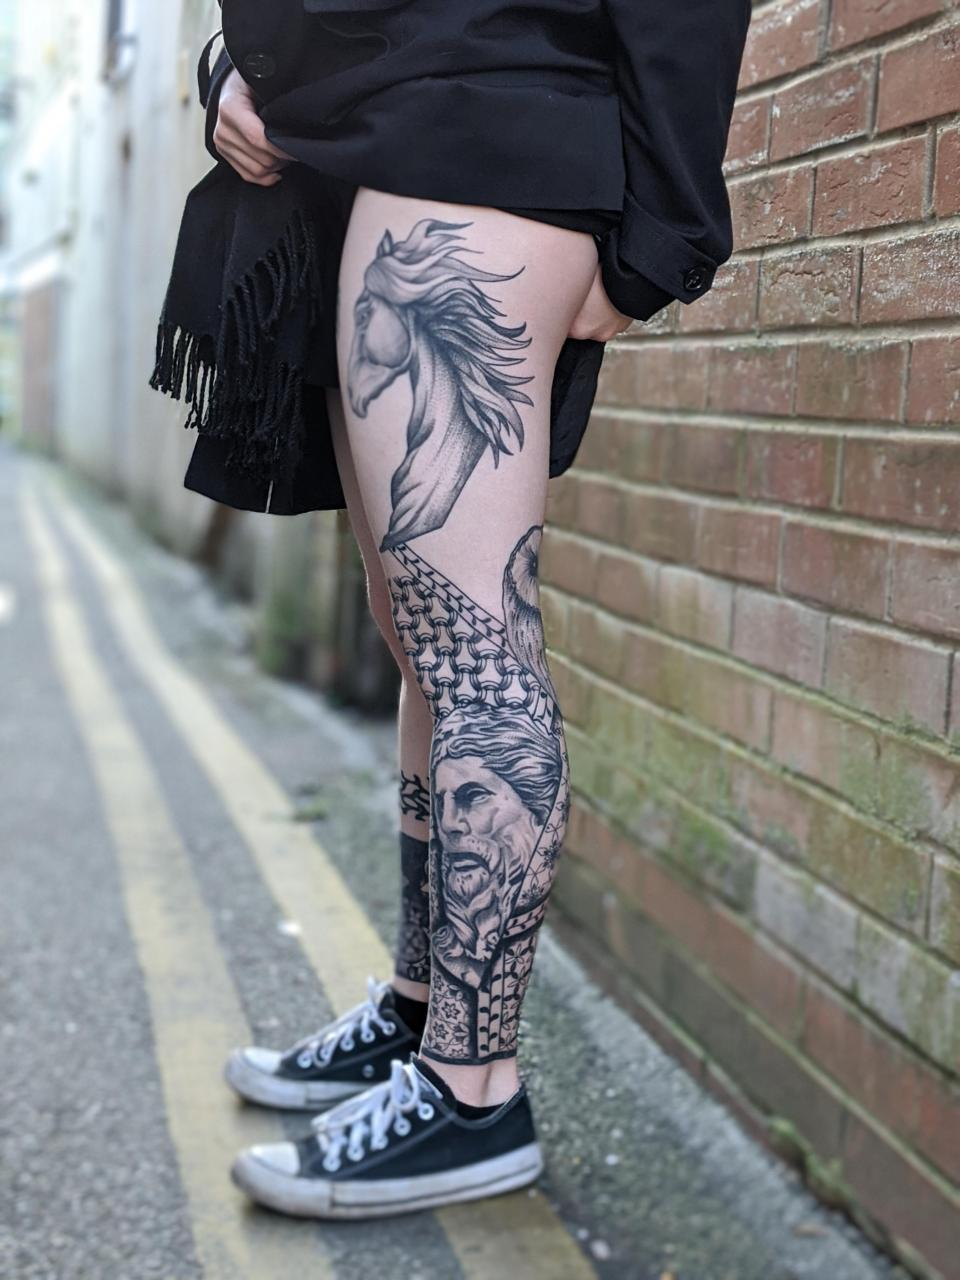 The wife's Leg nearly finished 🙂 All work done by me. My Instagram @jonnysaunders8